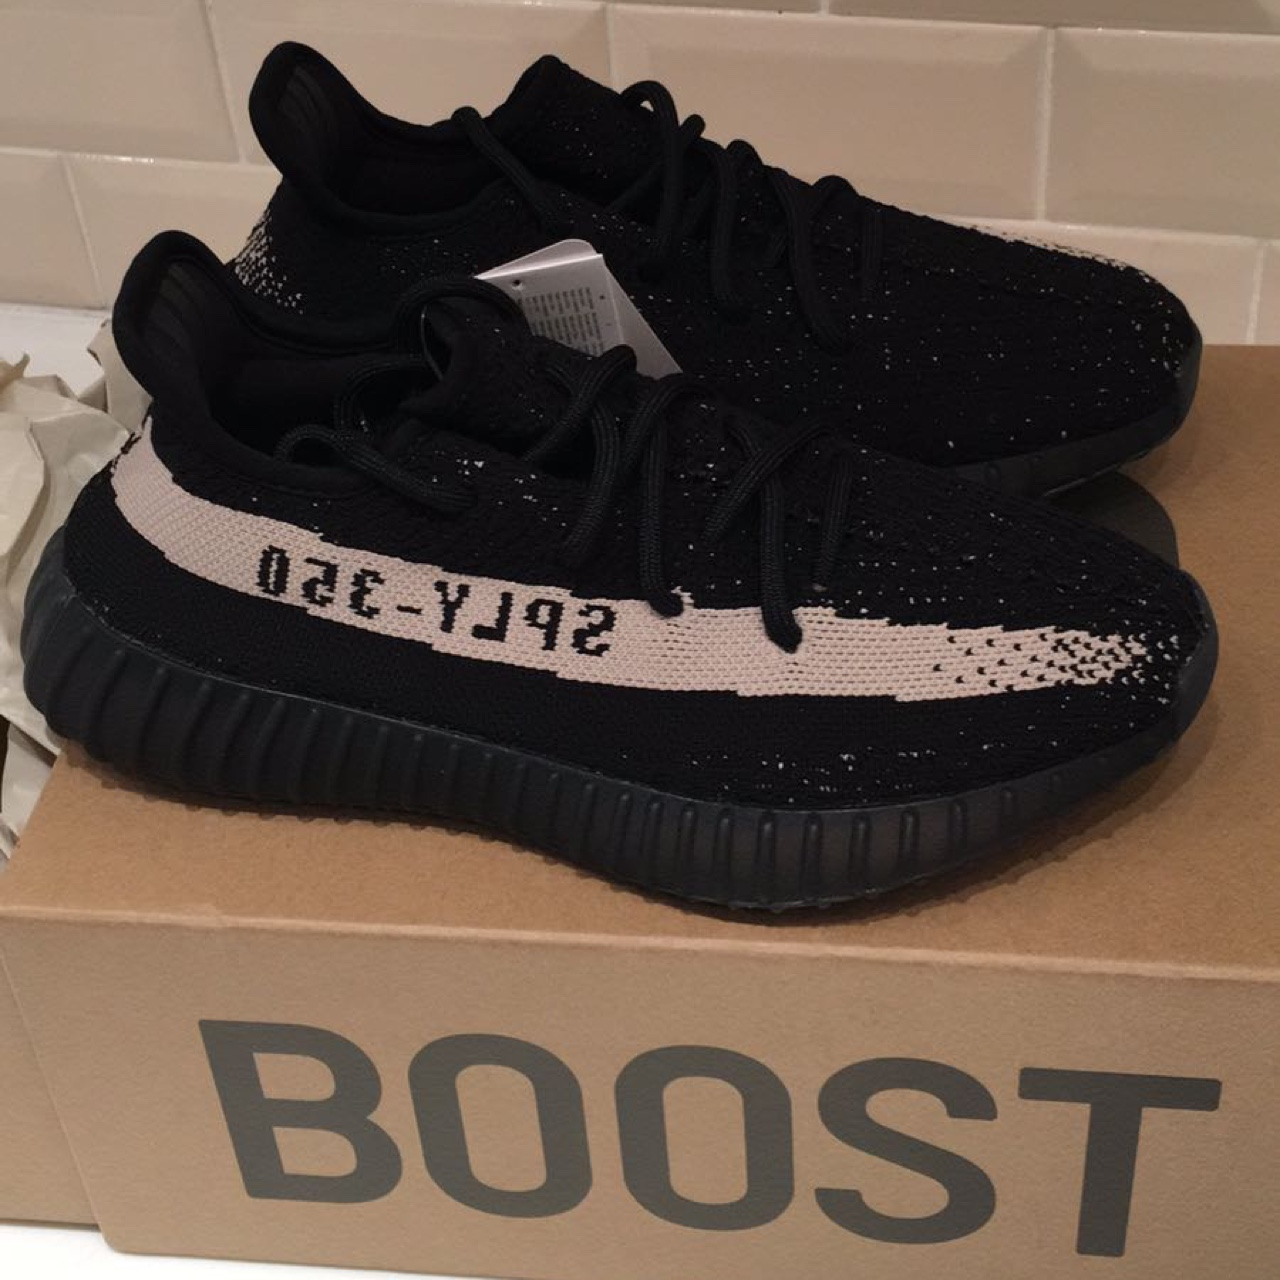 new styles 2e57f a2988 BRAND NEW Yeezy boost 350 V2 Oreo - UK size 5... - Depop